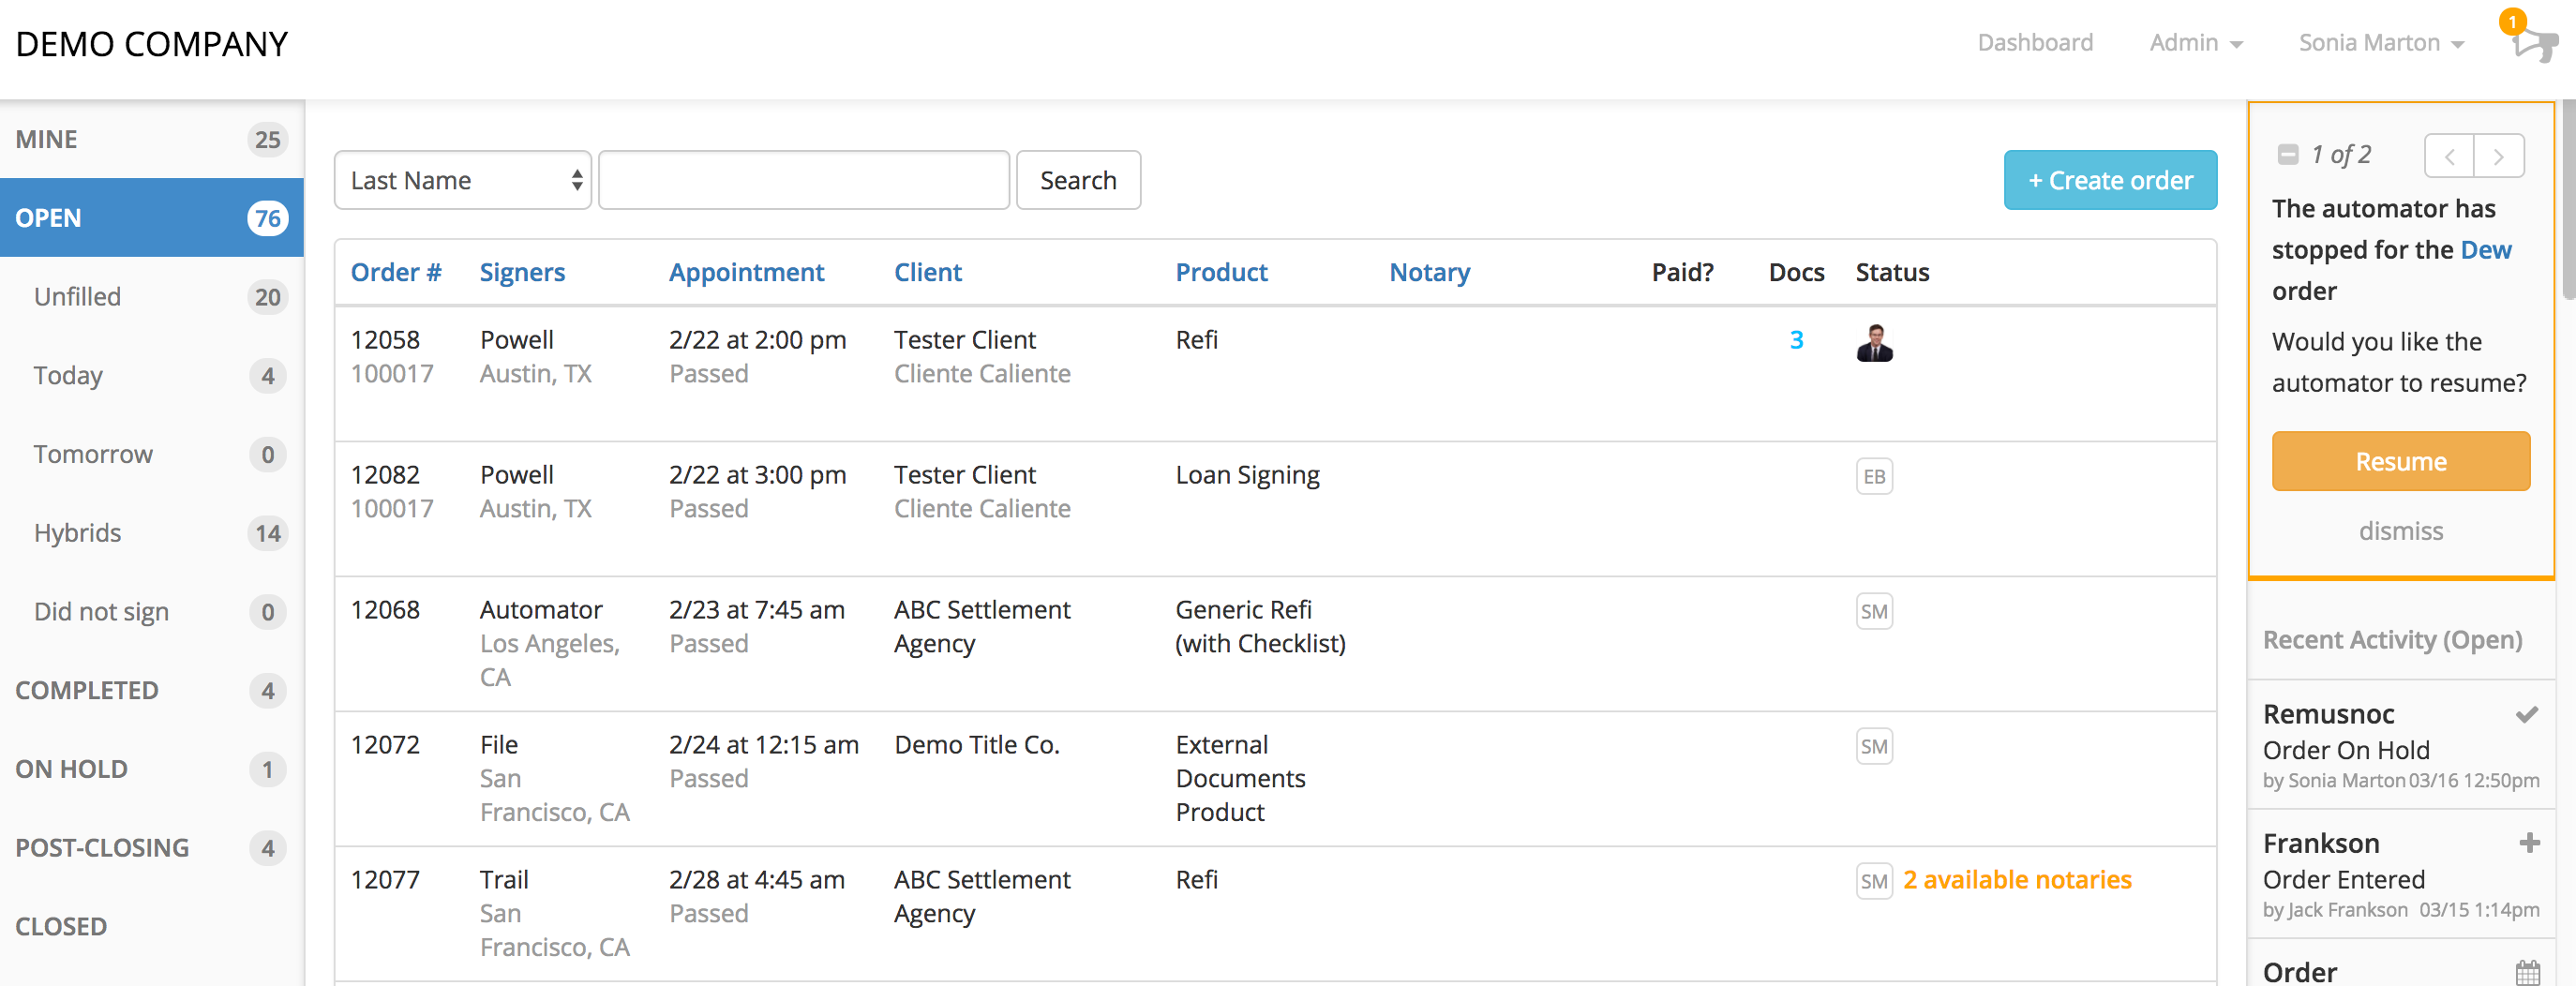 Screen_Shot_2018-03-16_at_12.50.52_PM.png